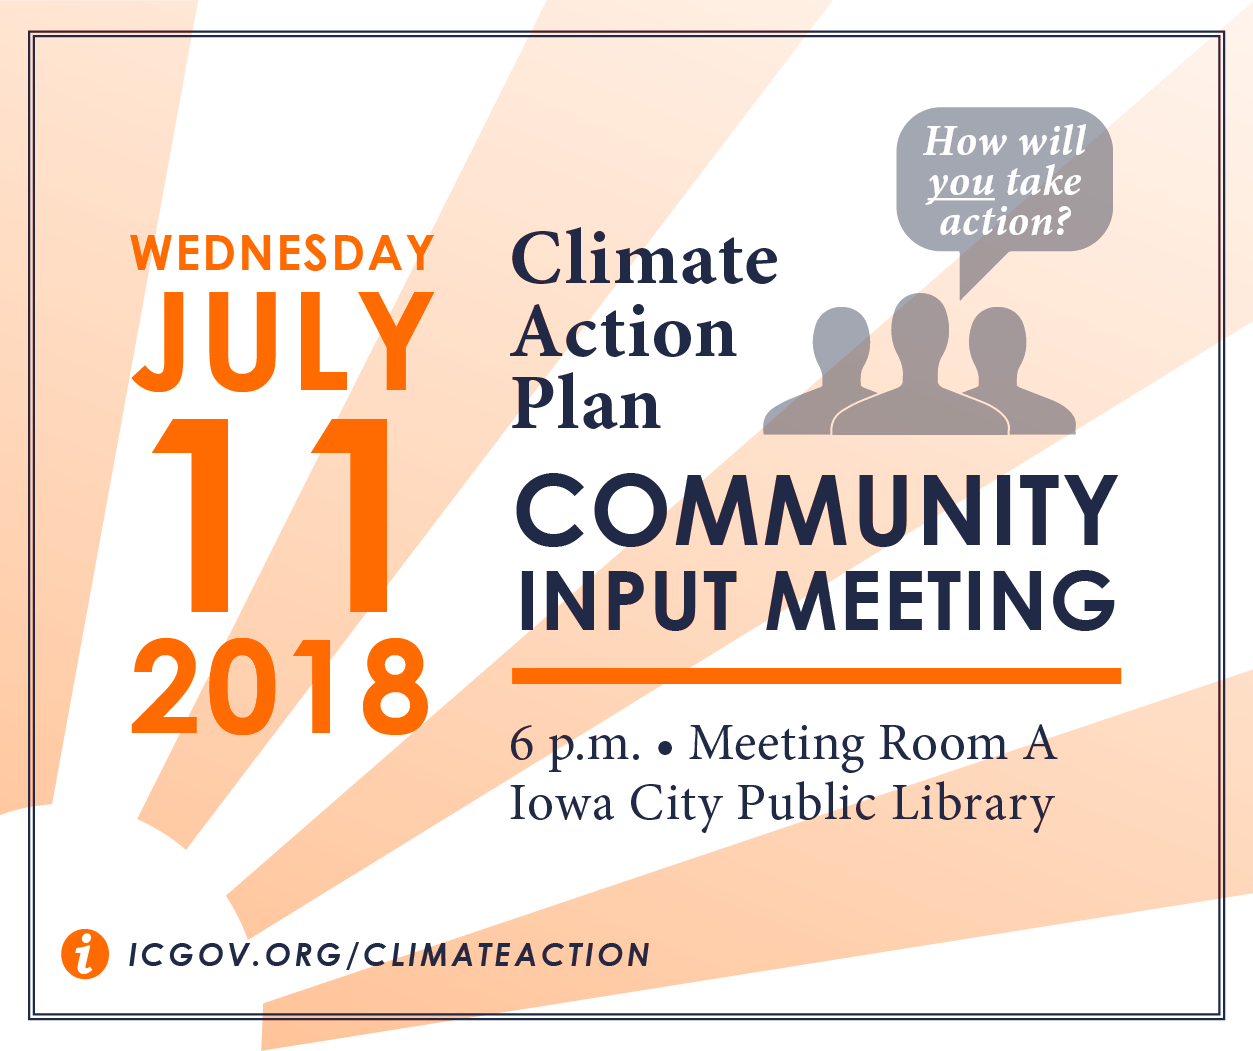 An invite to the Community Climate Action Meeting